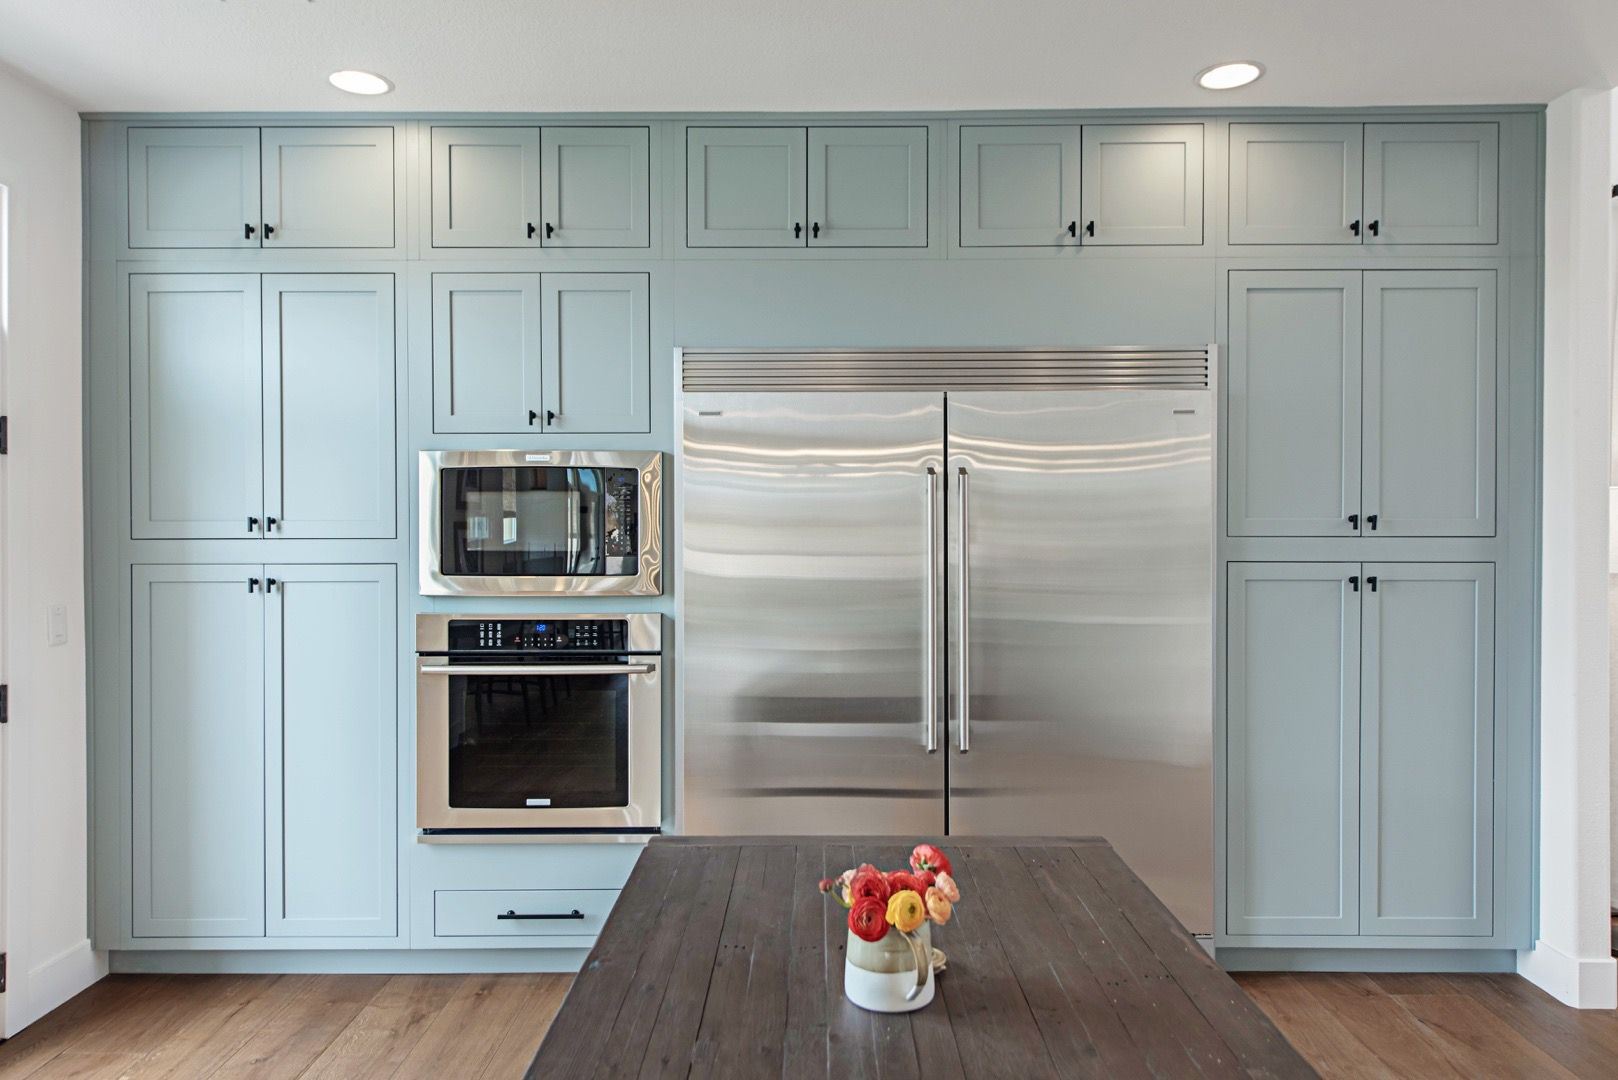 Upgraded Home Completed By Property Brothers Kitchen Cabinet Design Blue Kitchen Cabinets Blue Kitchens